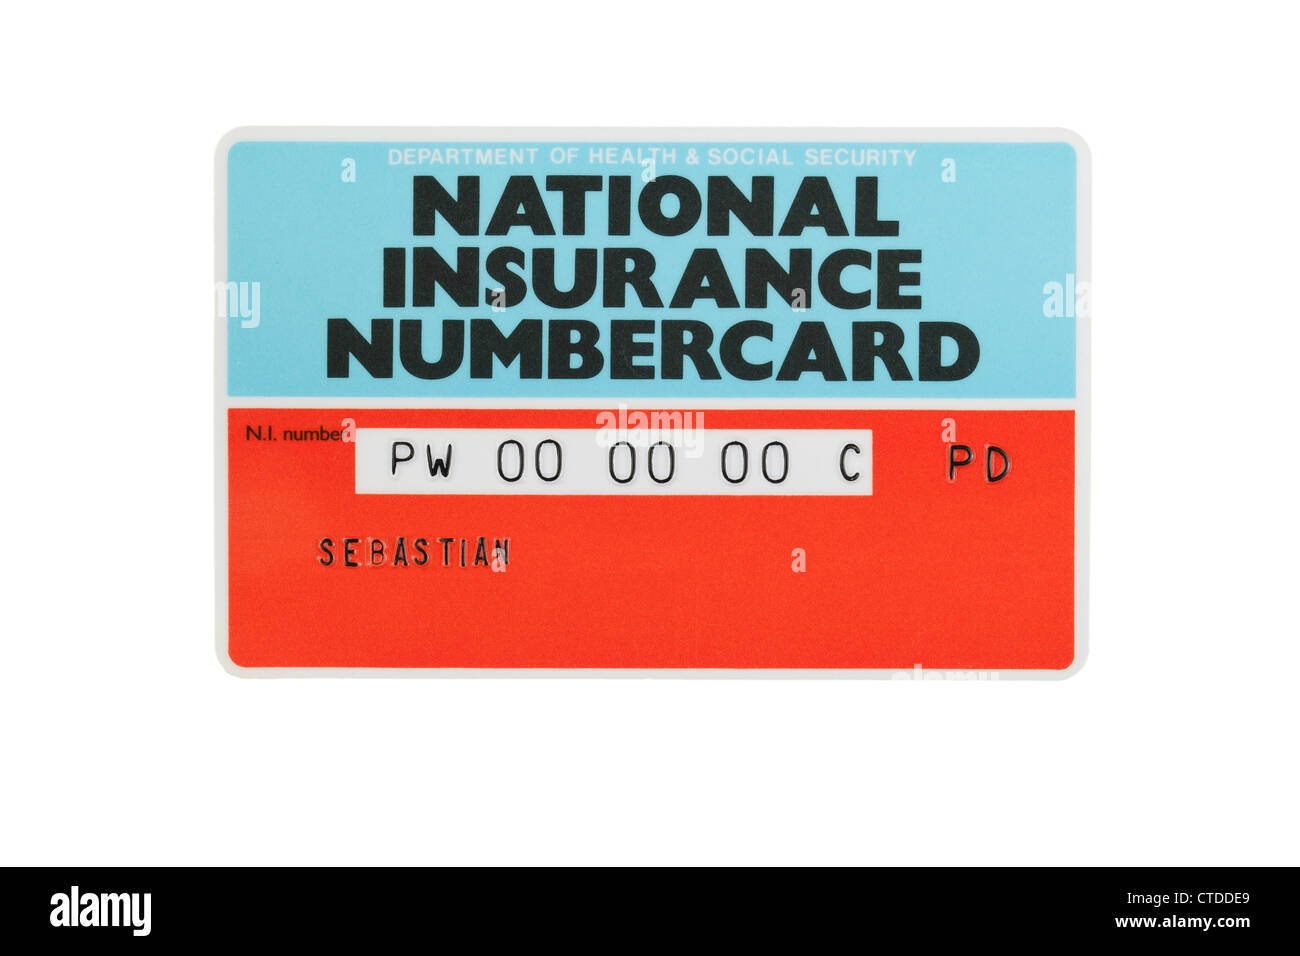 National Insurance Number card Stock Photo